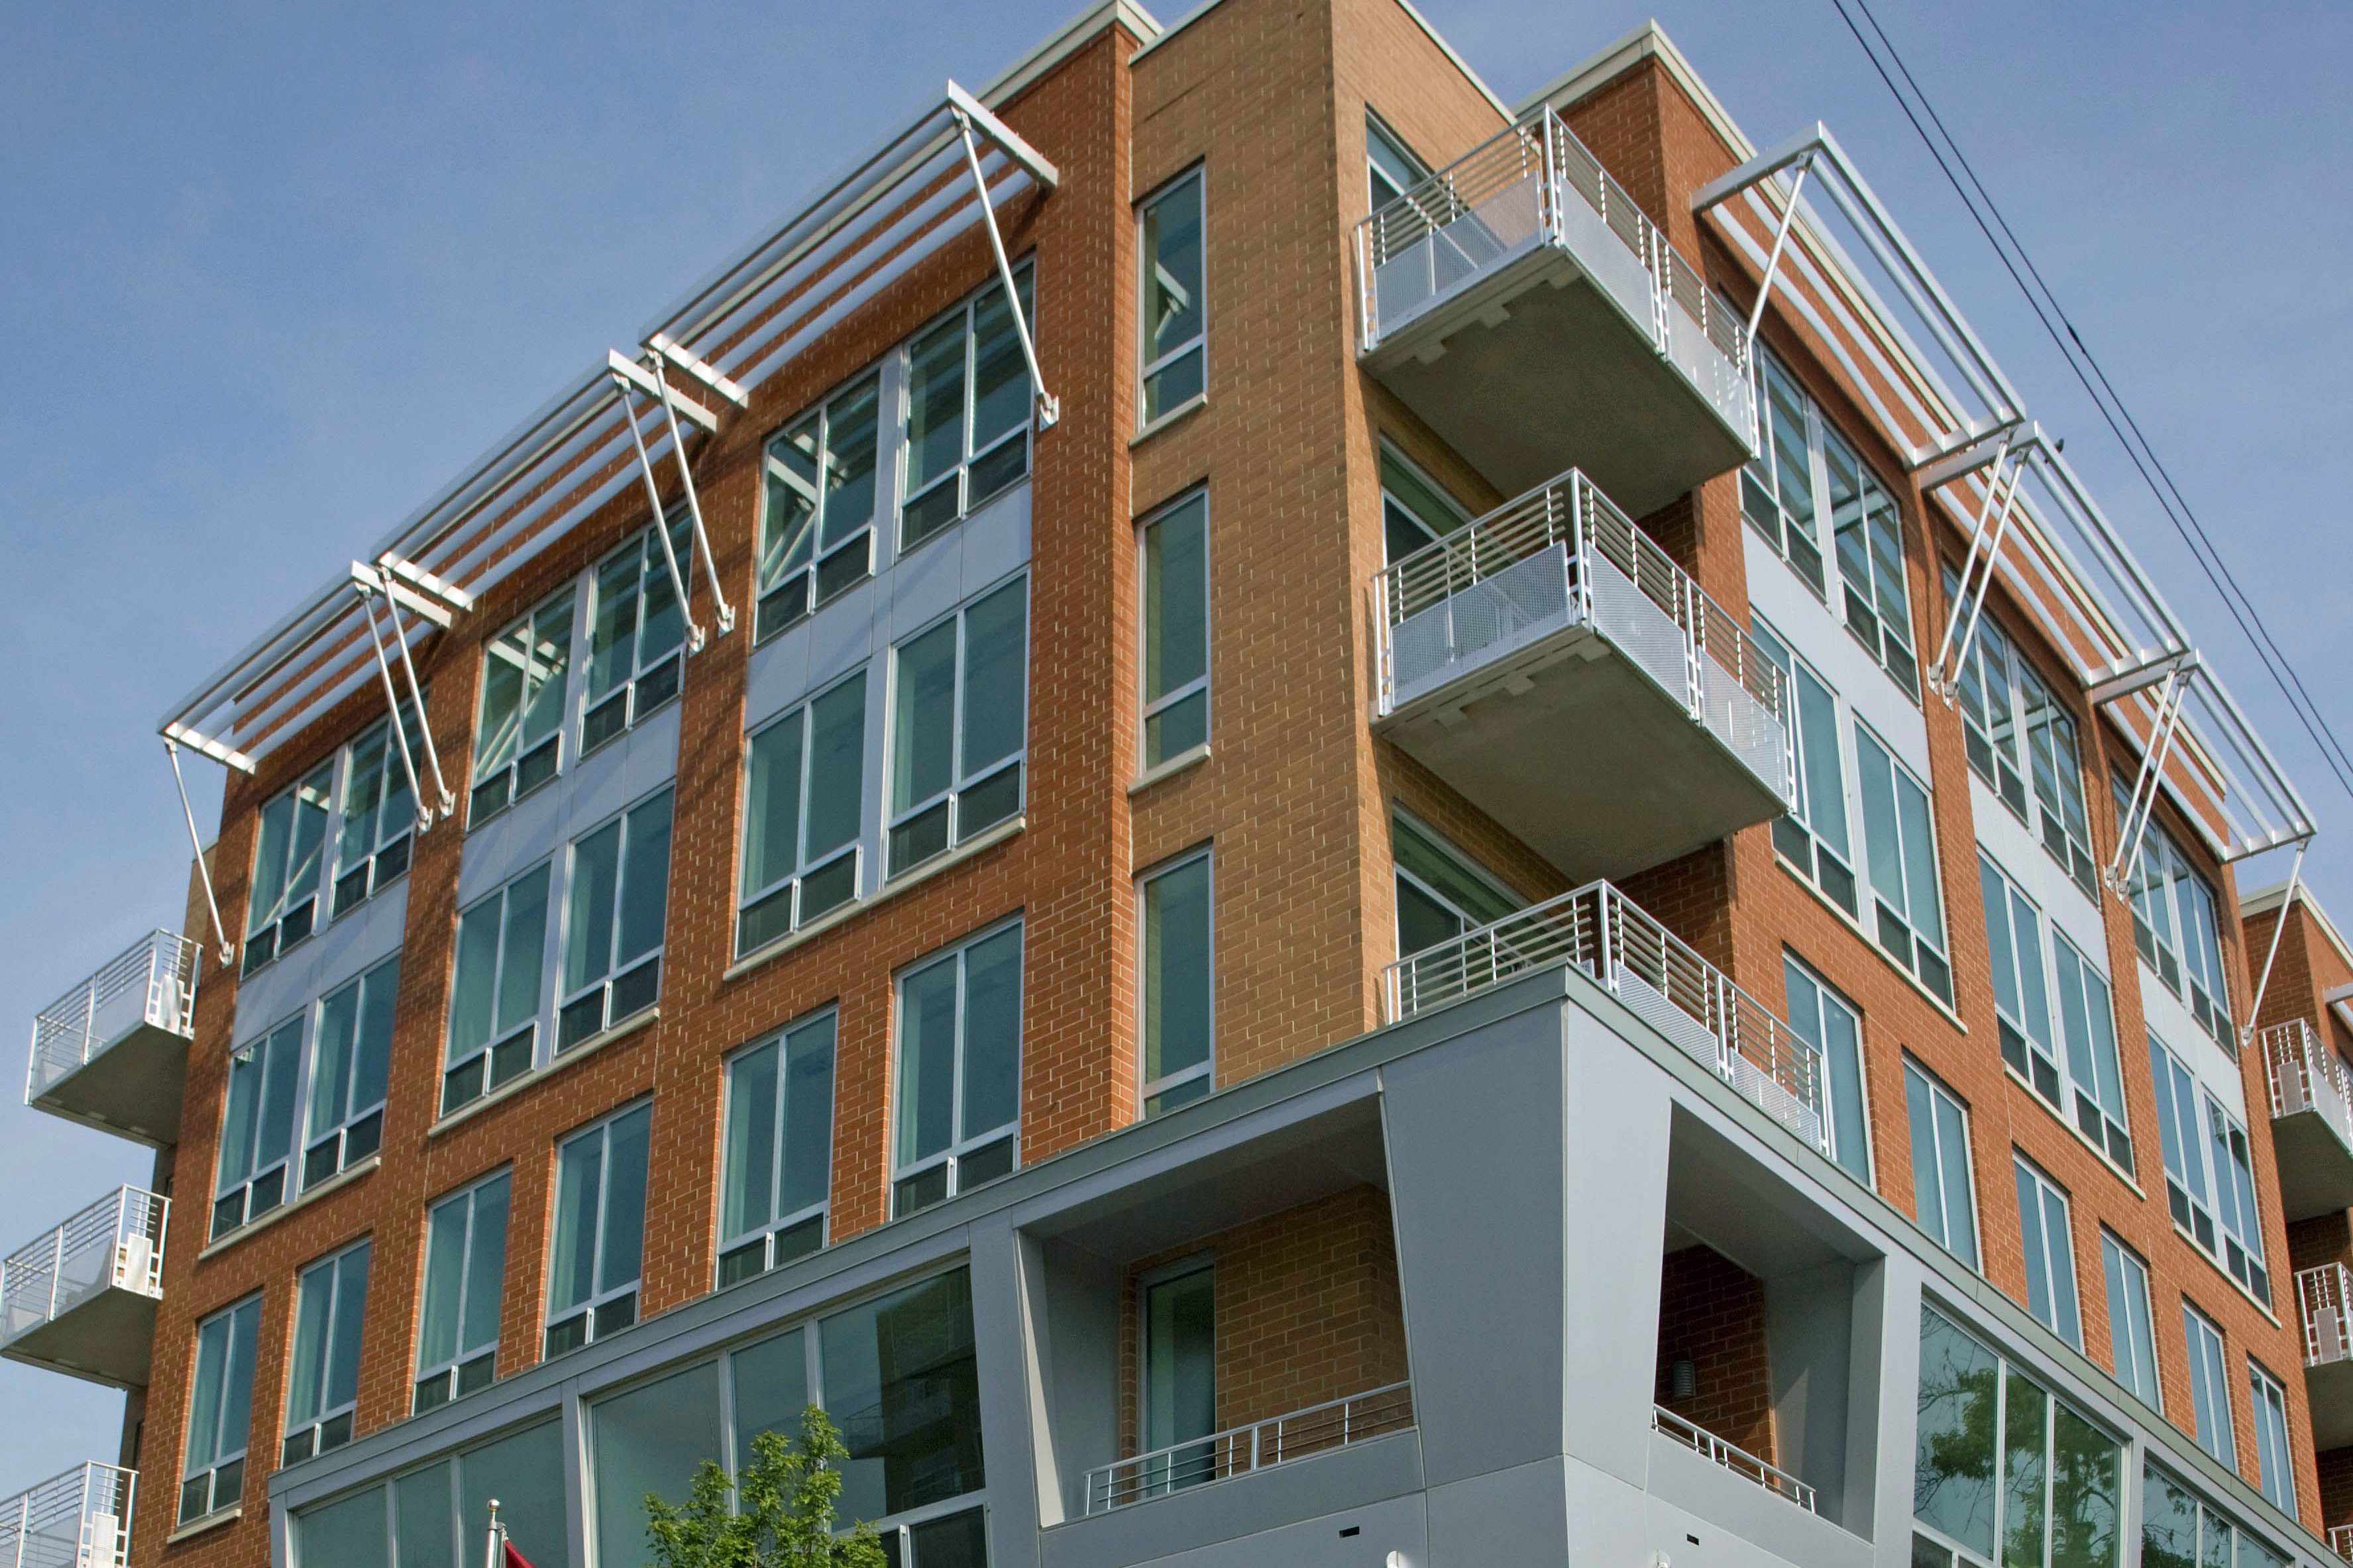 Foreclosed Apartment Buildings For Sale In Chicago